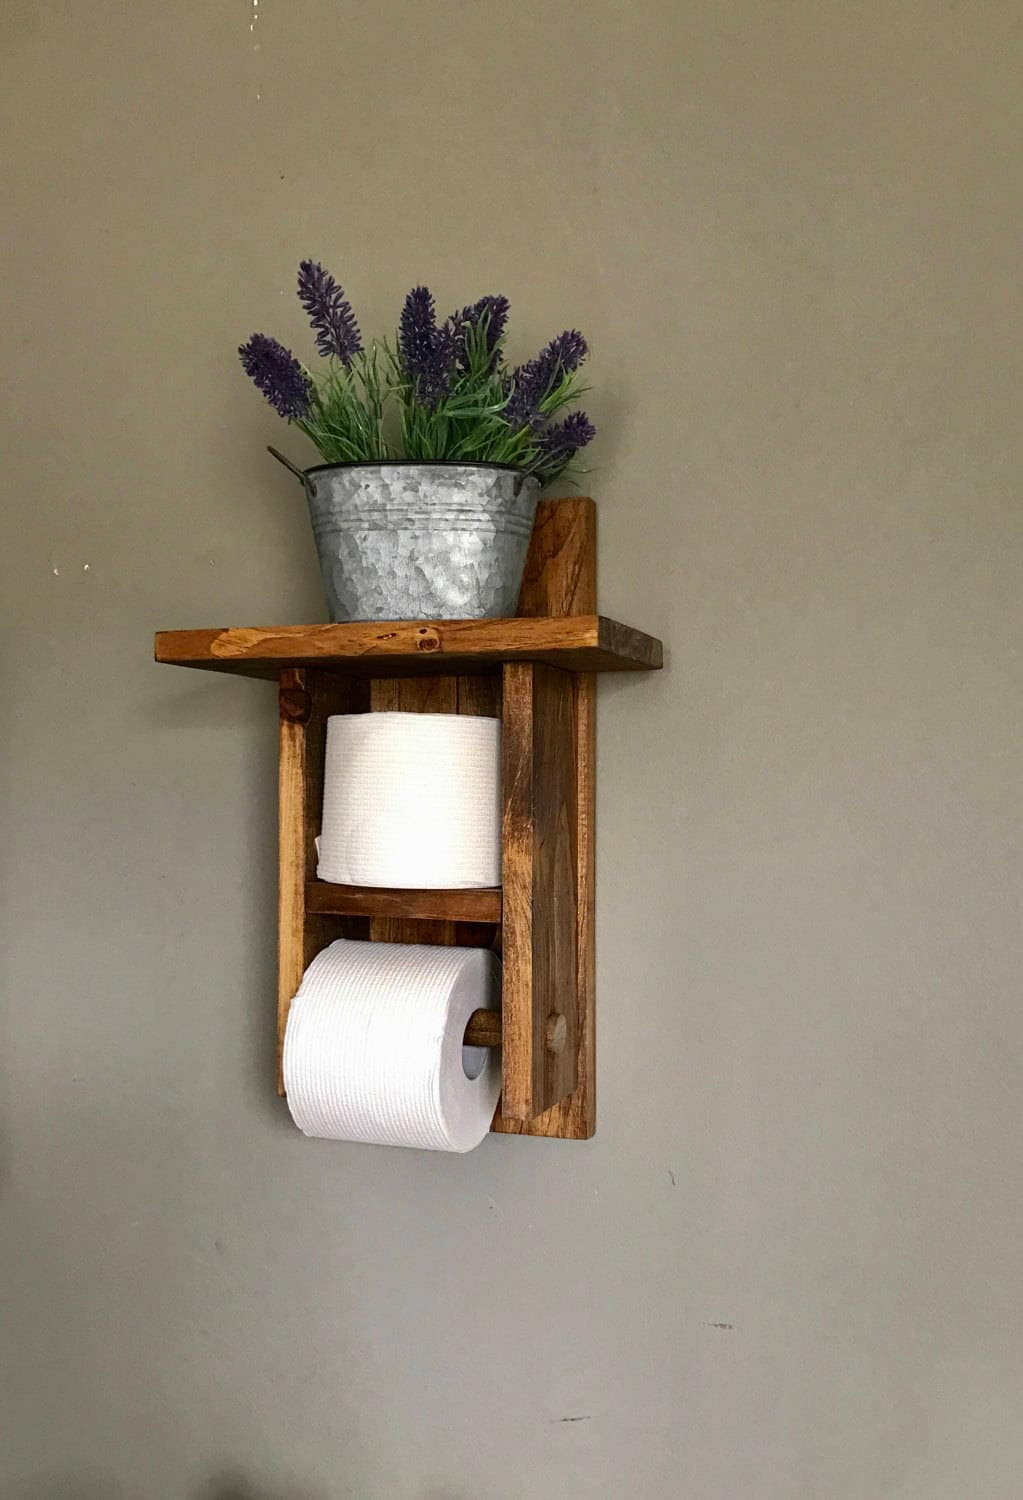 Rustic Toilet Roll Holder Toilet Roll Storage Country Toilet Roll Toilet Roll Holder Wood Toilet Roll Holder Roll Holder Tp Holder